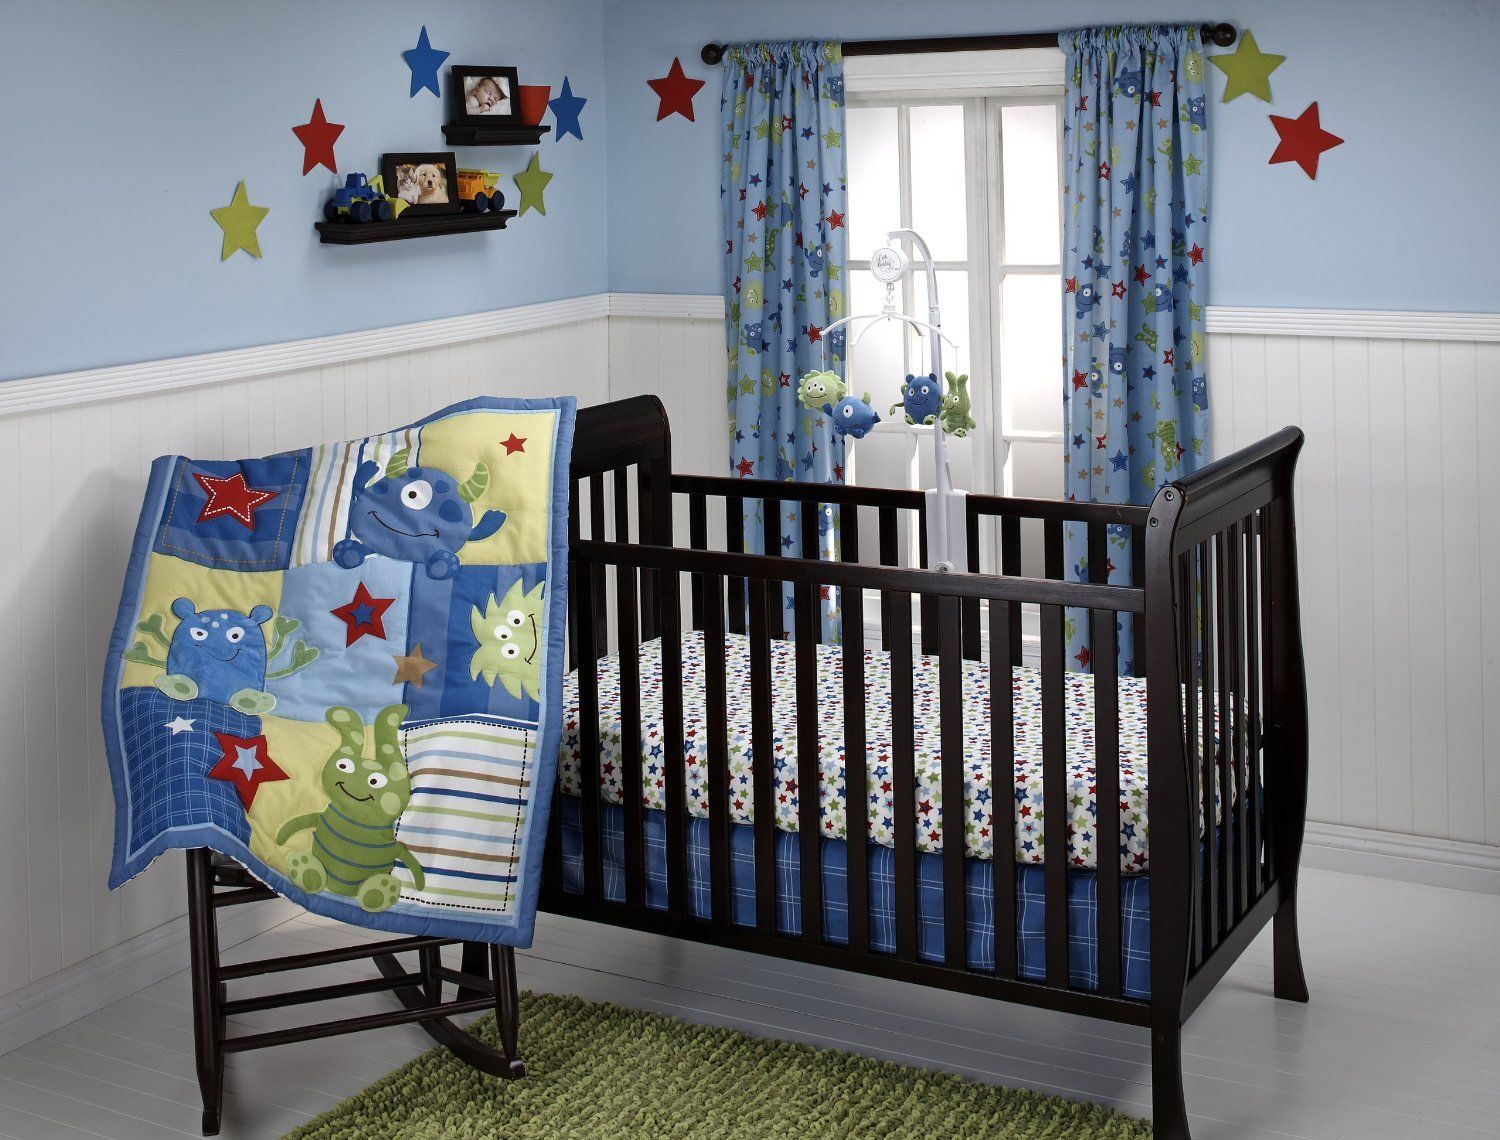 Baby boy nursery wallpaper wallpapersafari for Baby room wallpaper